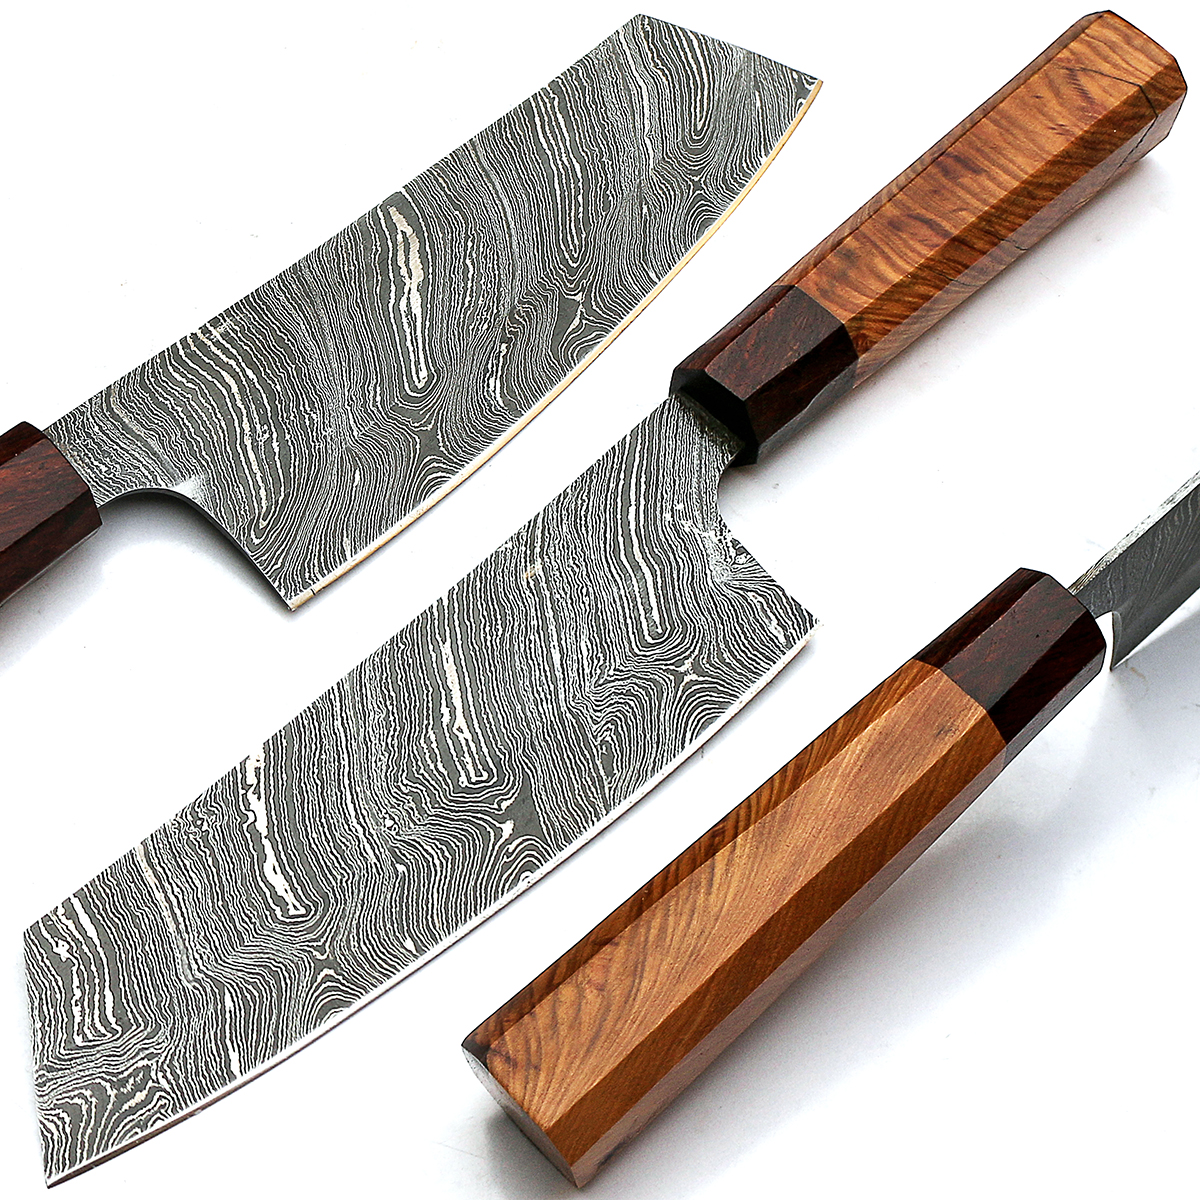 damascus chef knives - handmade damascus steel kitchen